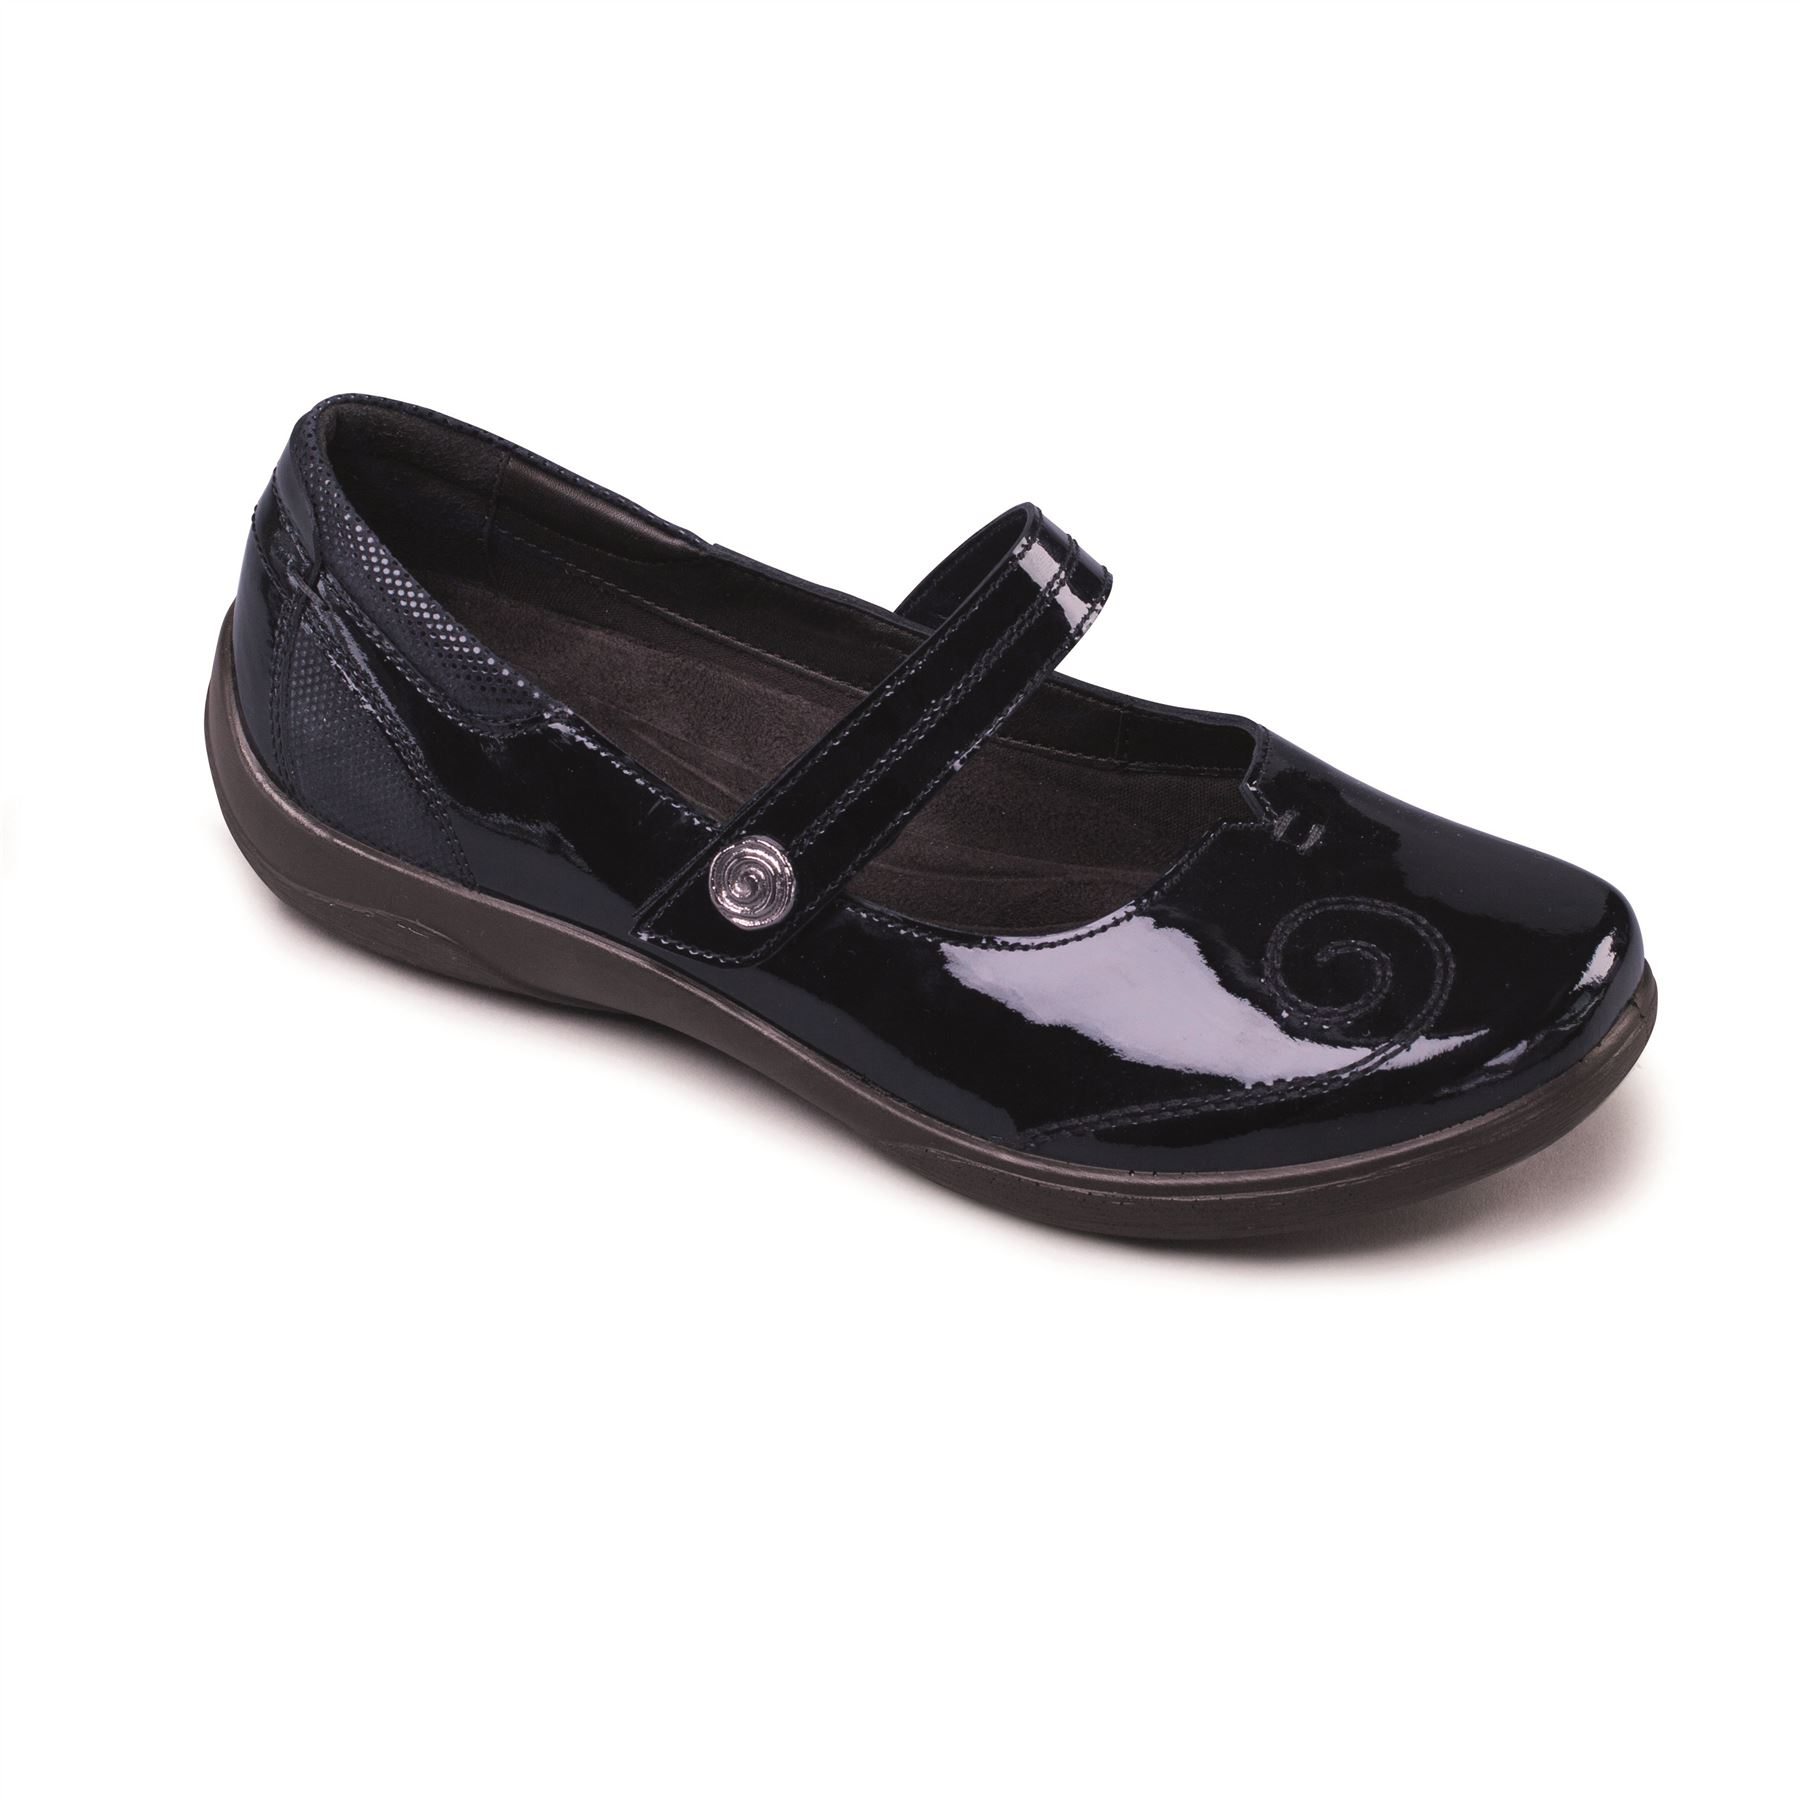 Padders-Mujer-Cuero-Zapato-039-Letra-039-Doble-FIT-Sistema-Ultra-Ancho-eee-eeee-Fit